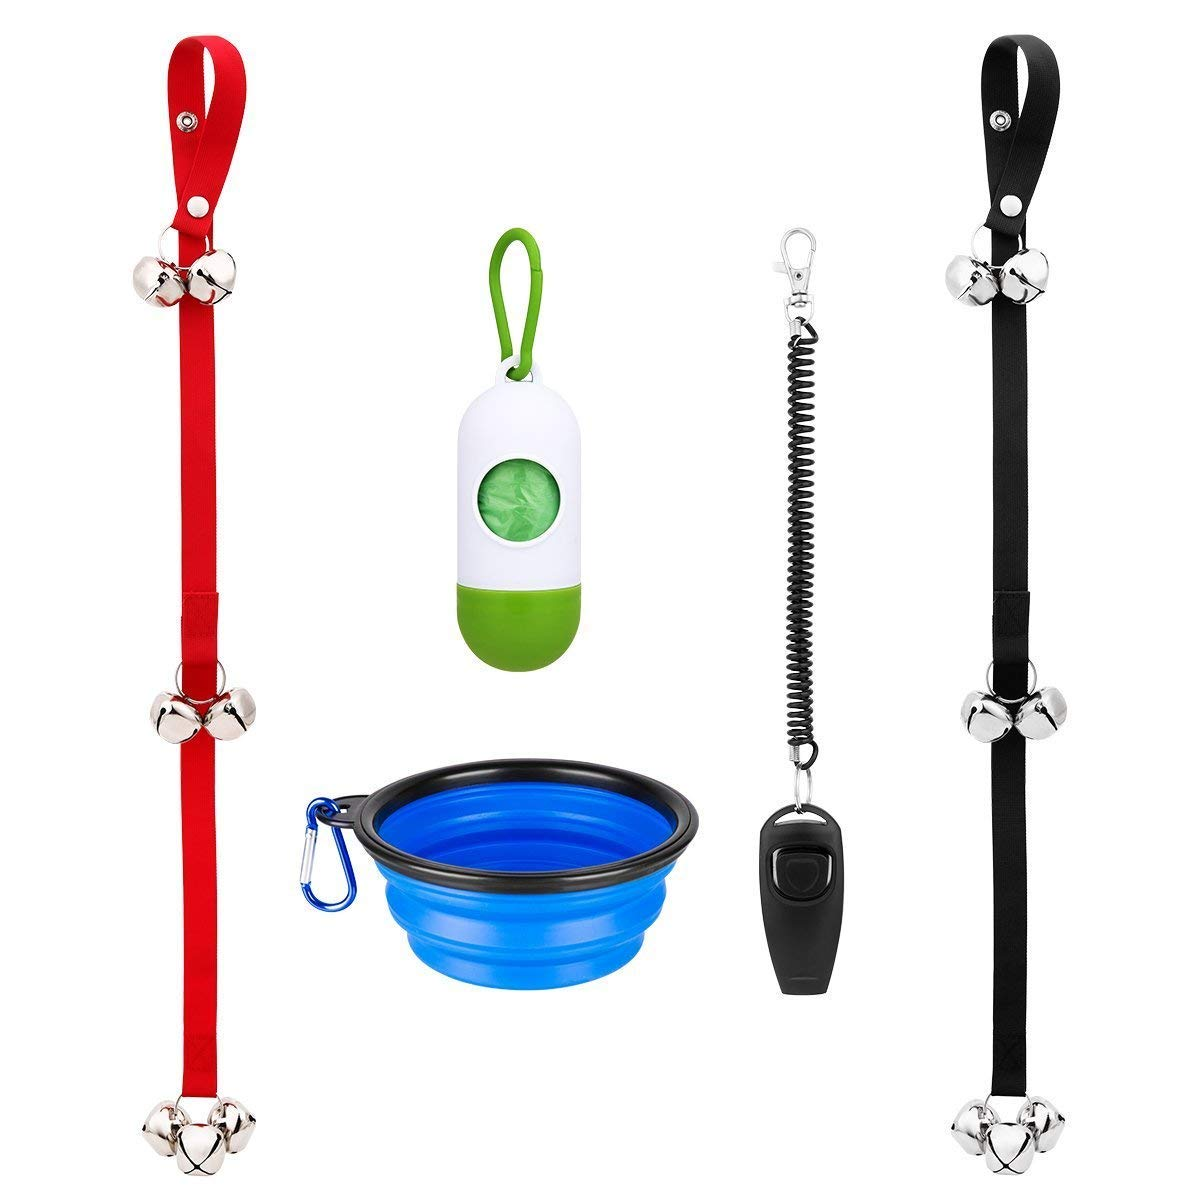 Loilee Dog doorbell Set for Dog Training and Housebreaking with One Clicker and One Dog Waste Bag Dispenser